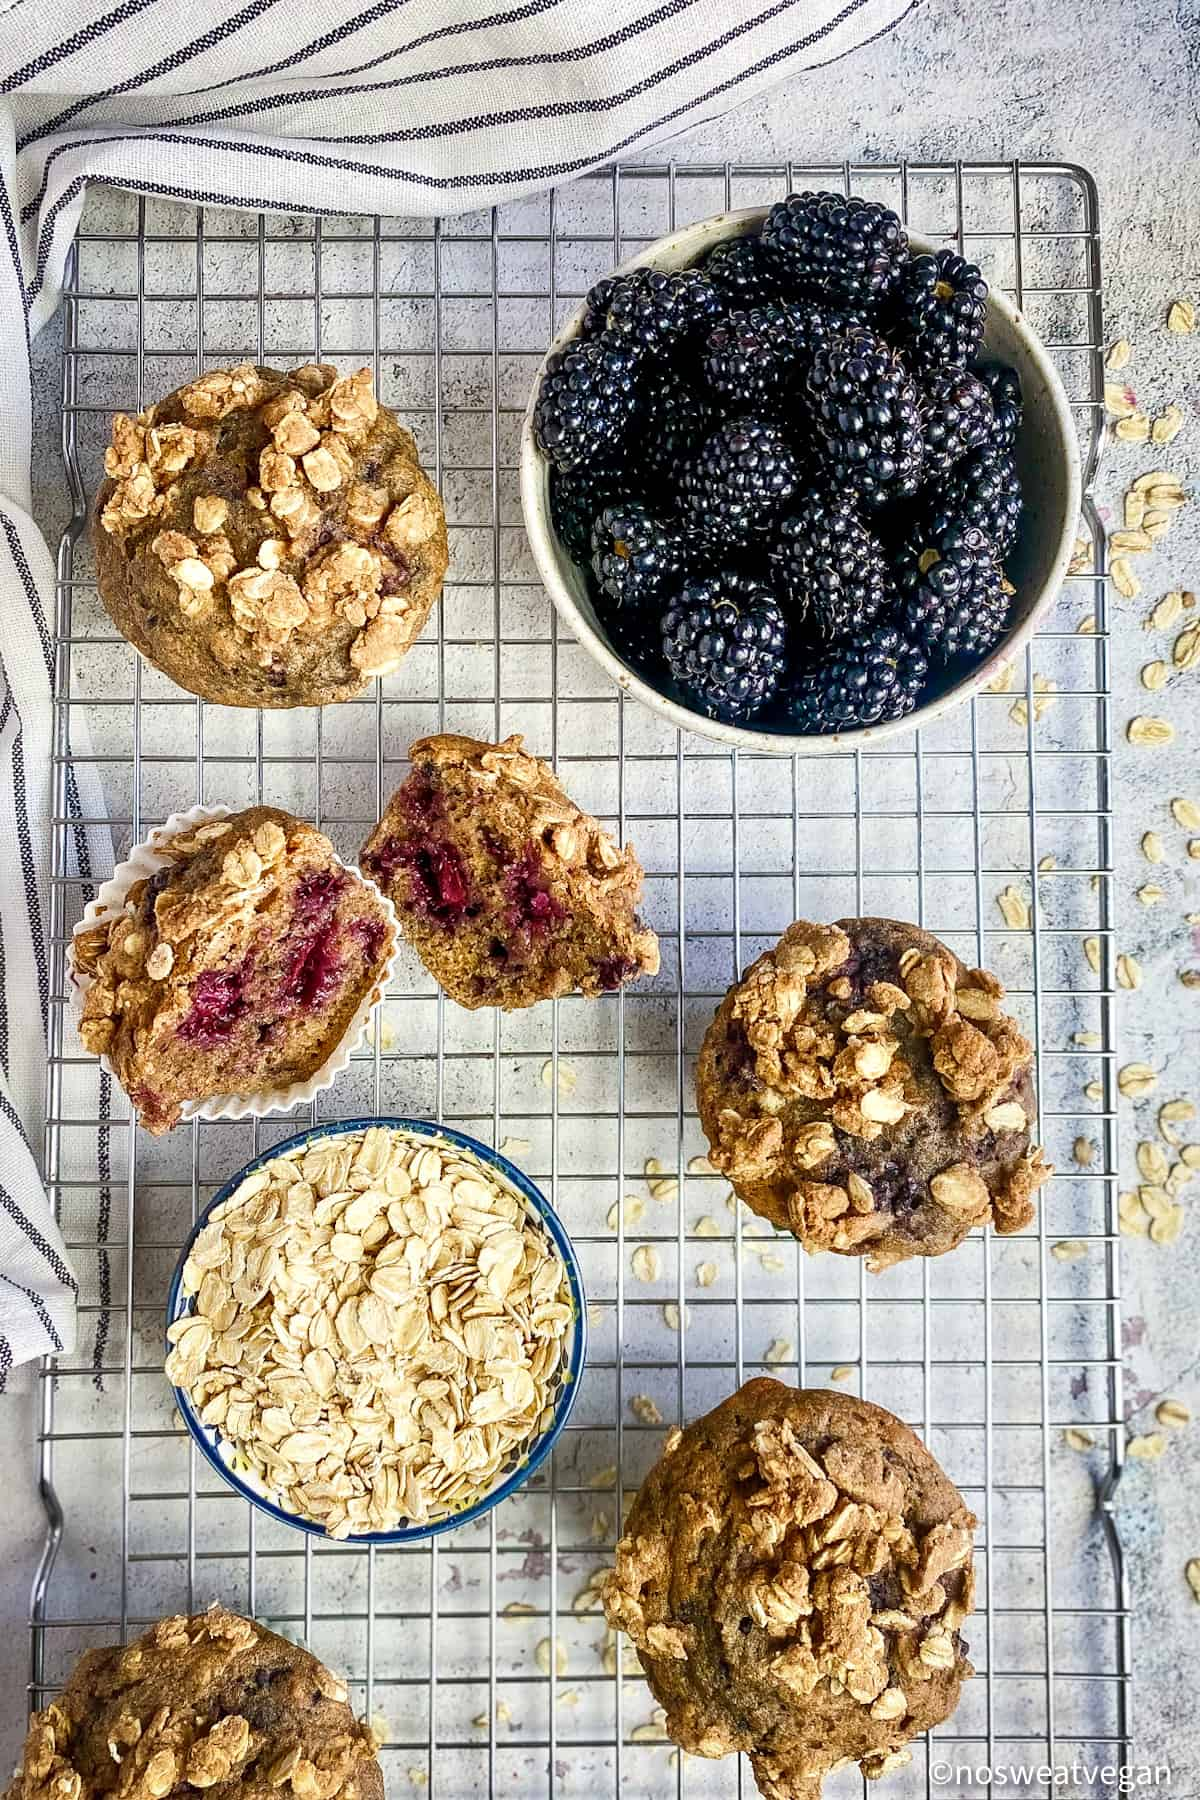 Oil-free blackberry muffins on drying rack with a bowl of blackberries and a bowl of oats.